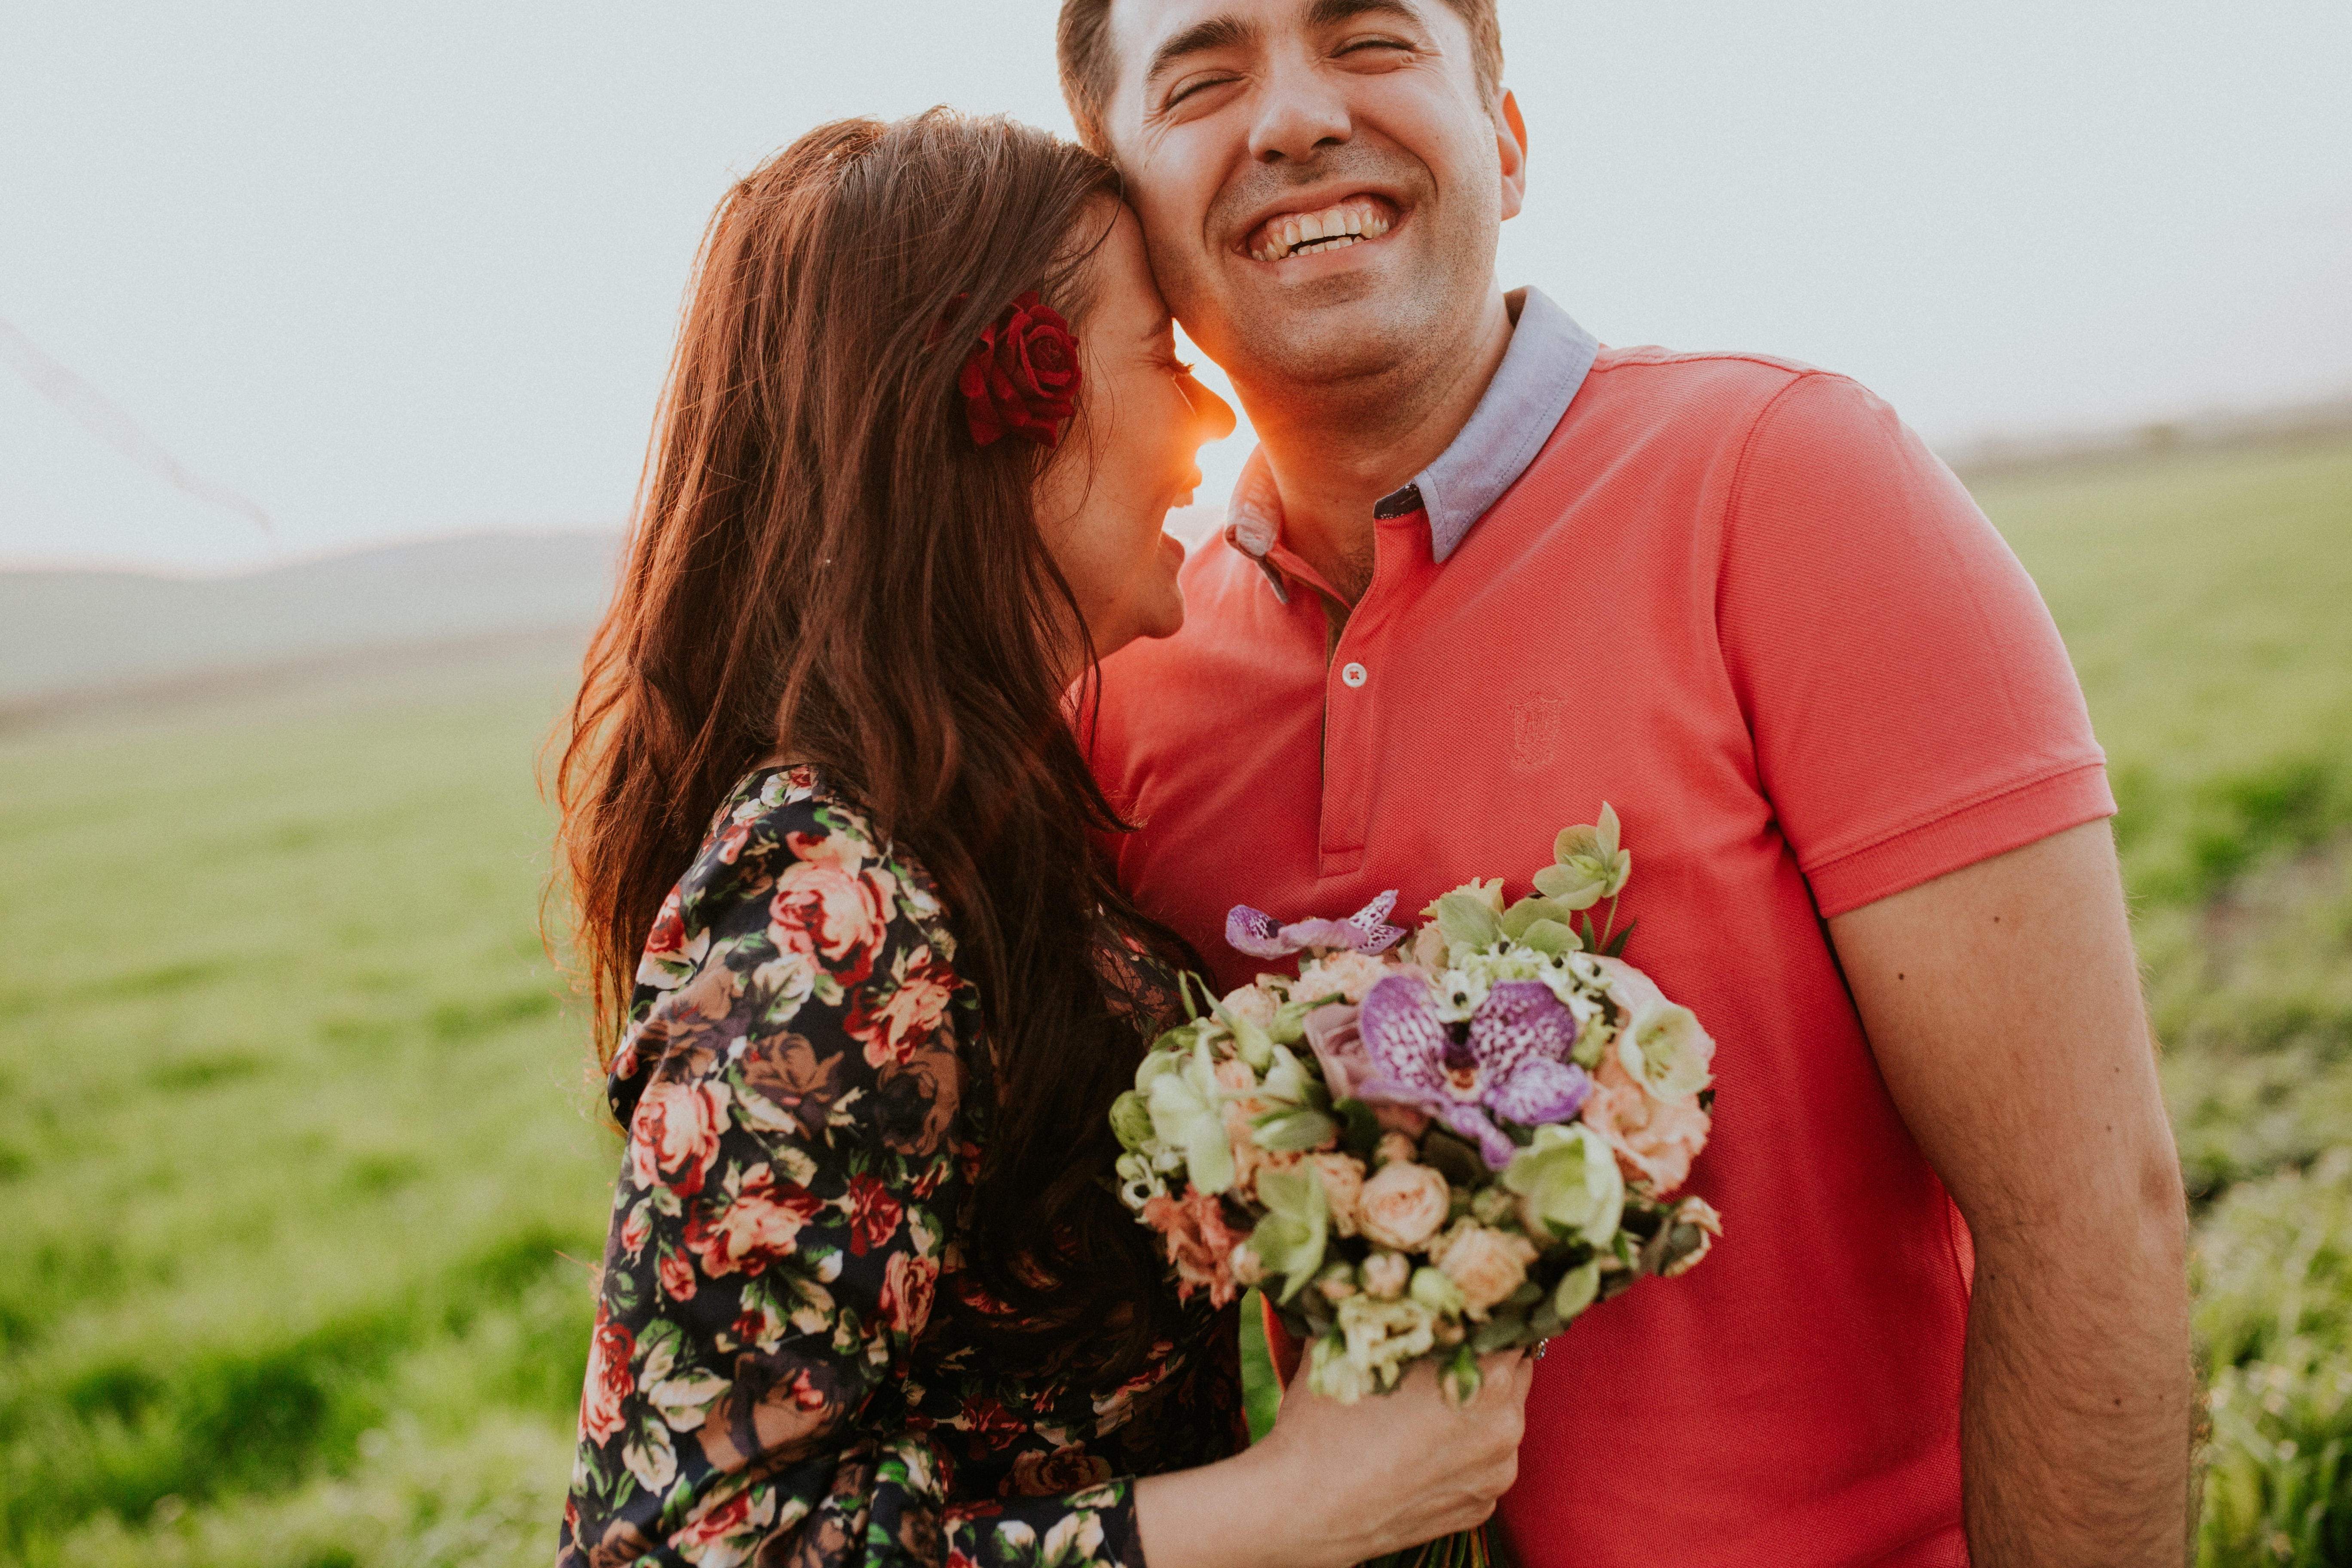 A man and a woman laughing in a sunny field. She holds a bouquet of flowers.